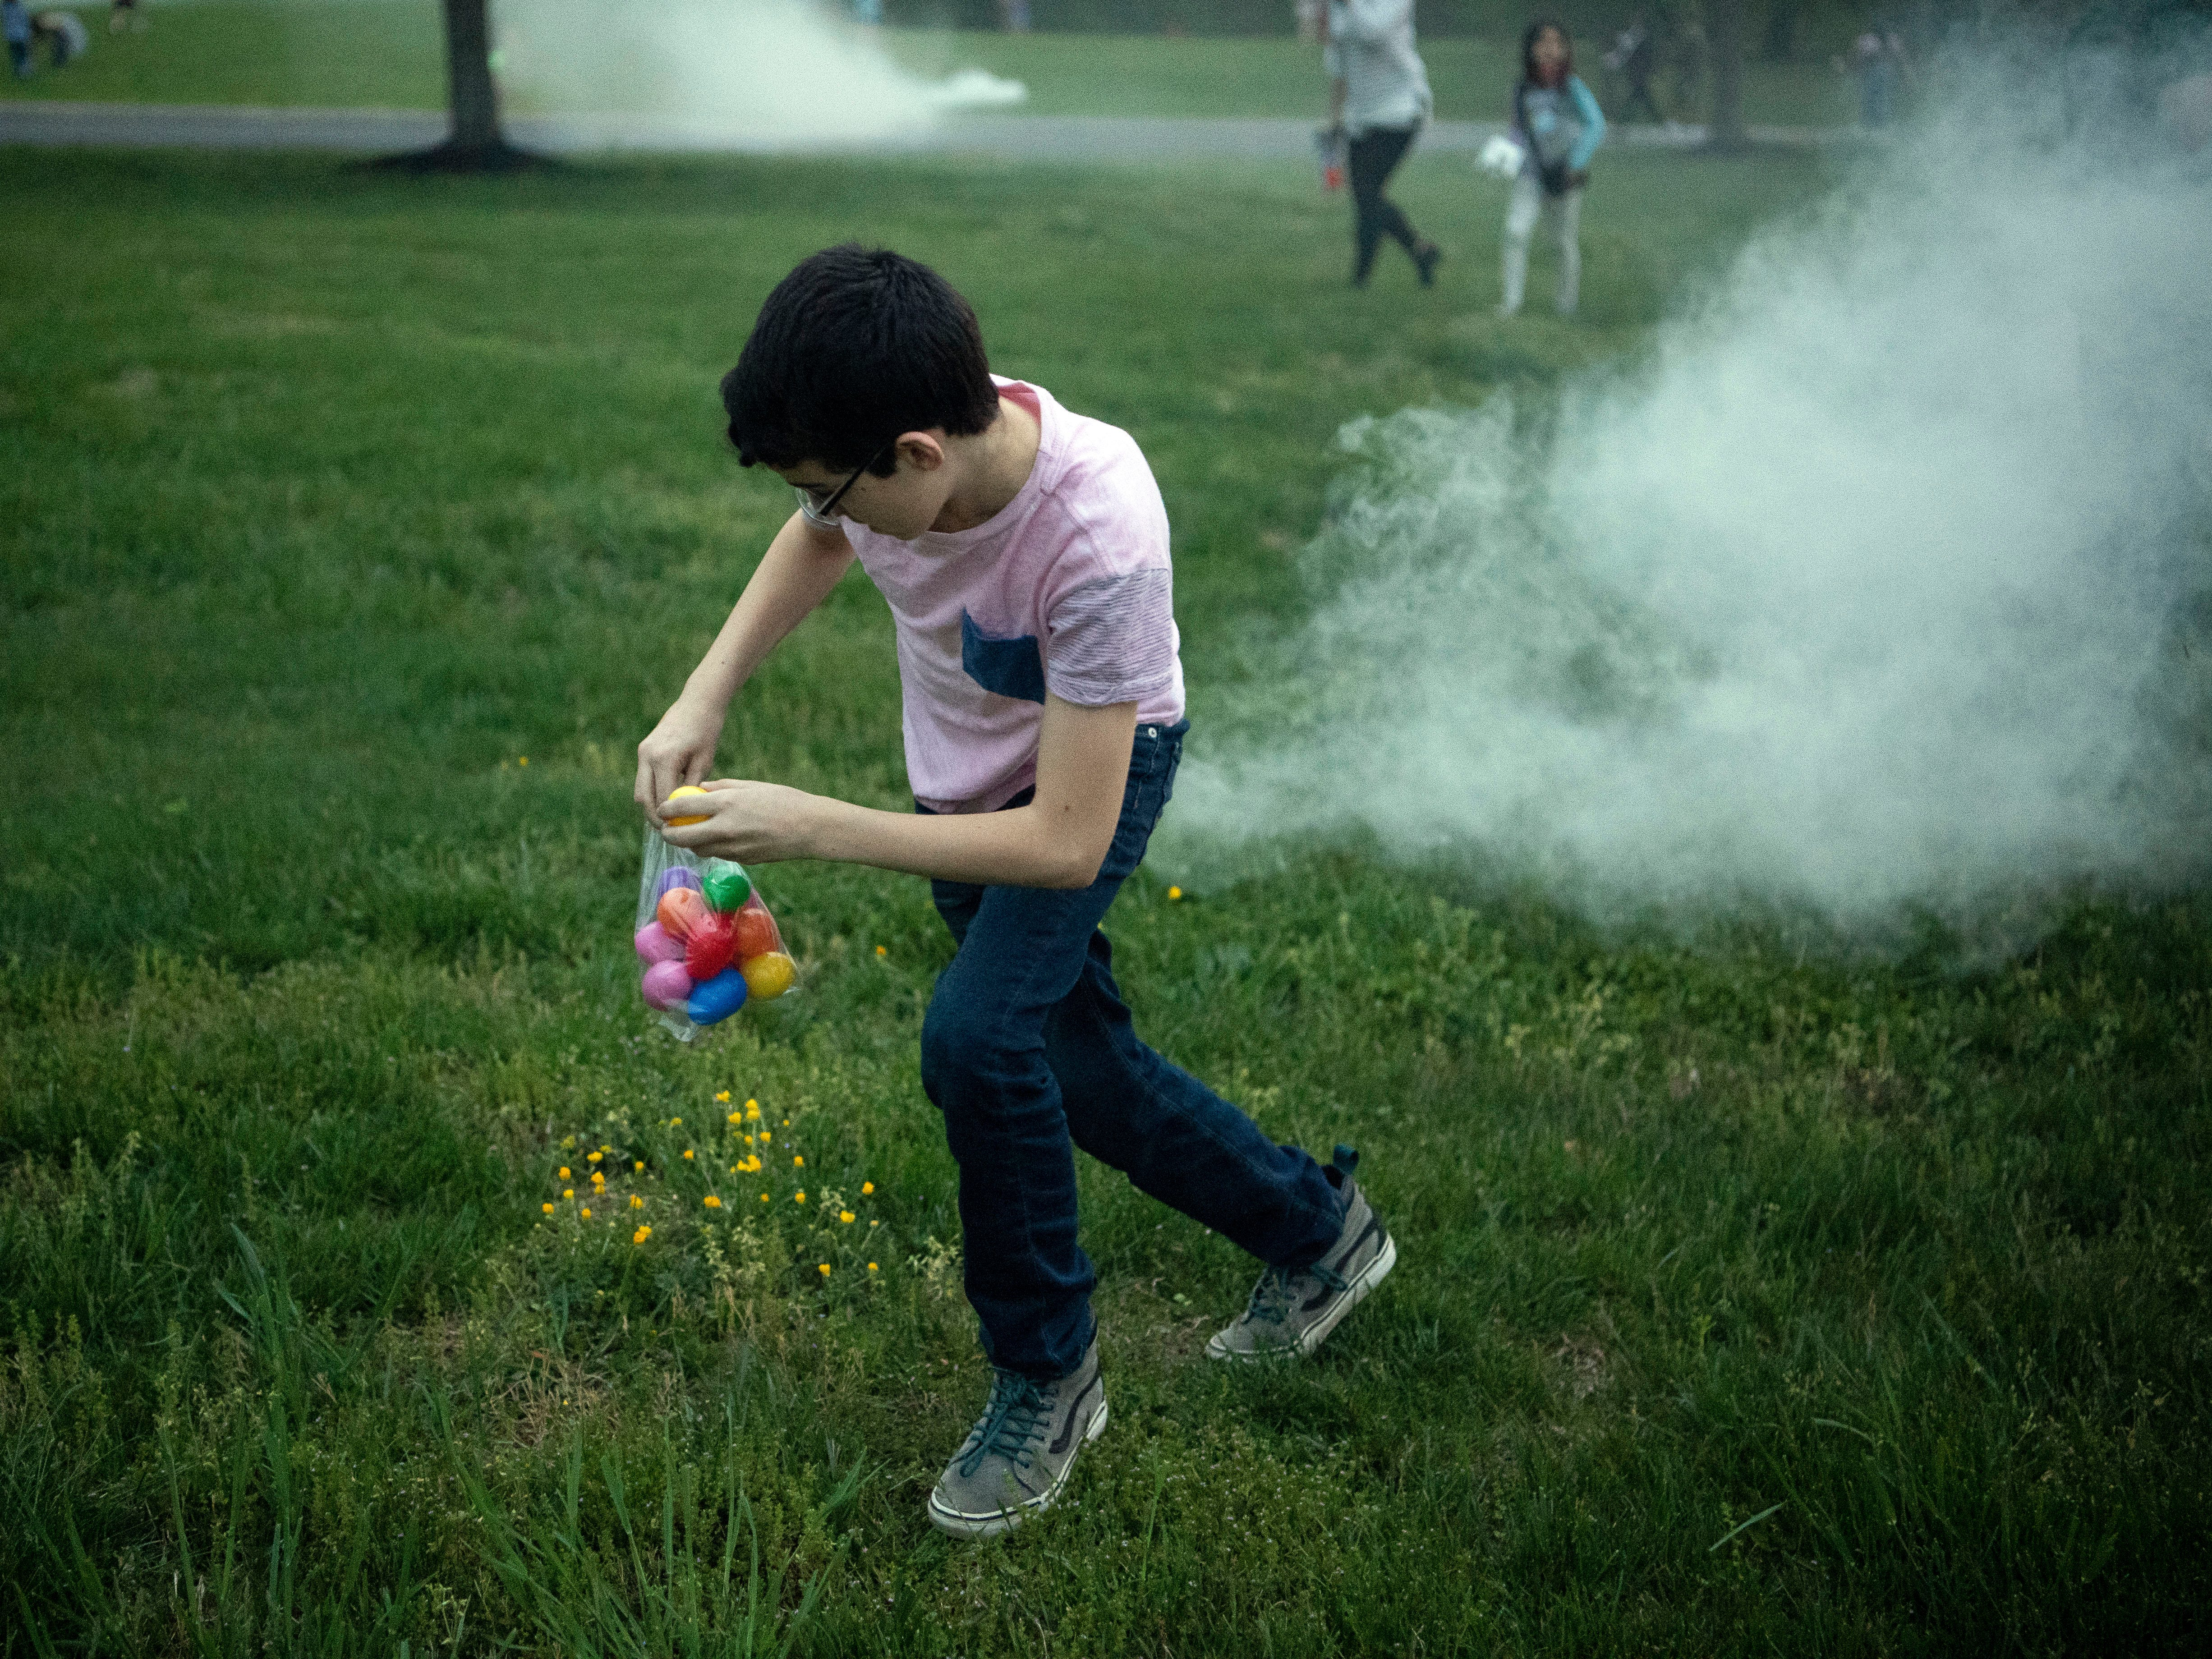 Amid smoke bombs, Faith Promise Church's North Campus holds a Battle Royale-themed Easter egg hunt where teens searched for eggs while trying to avoid being hit by foam darts on Wednesday, April 17, 2019.